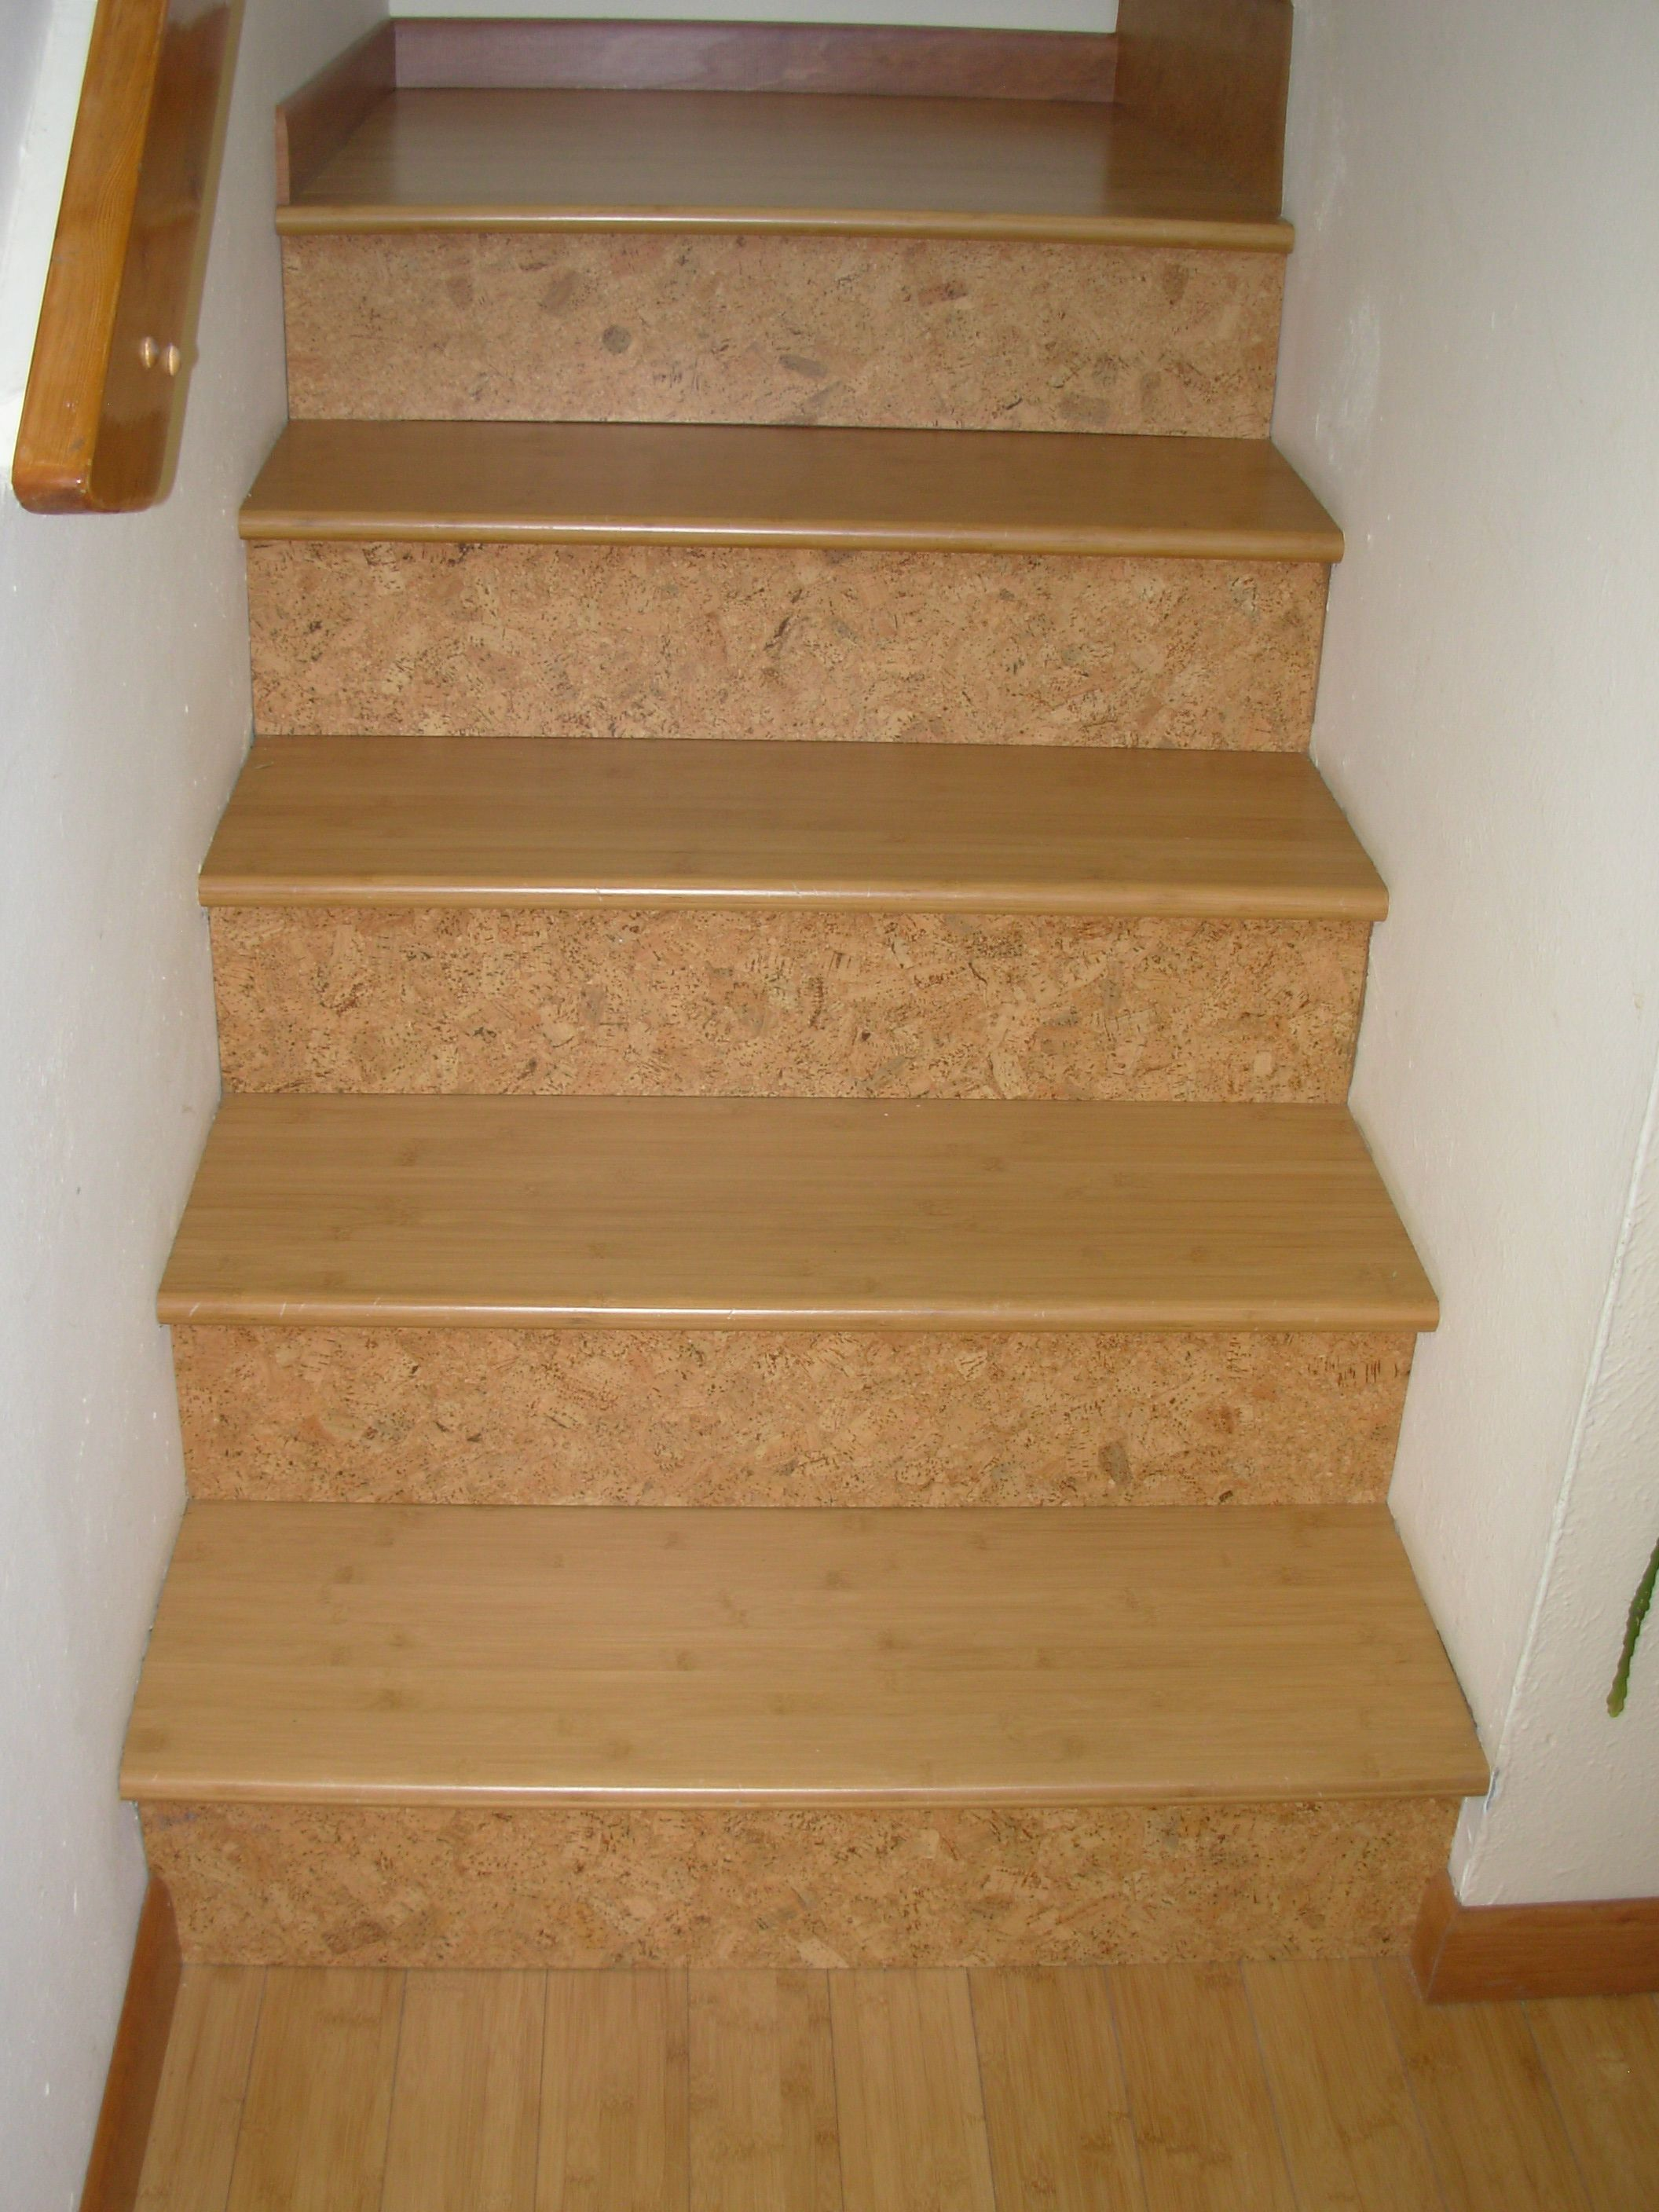 Cork Risers Compliment The Bamboo Stairtreads And Landings!